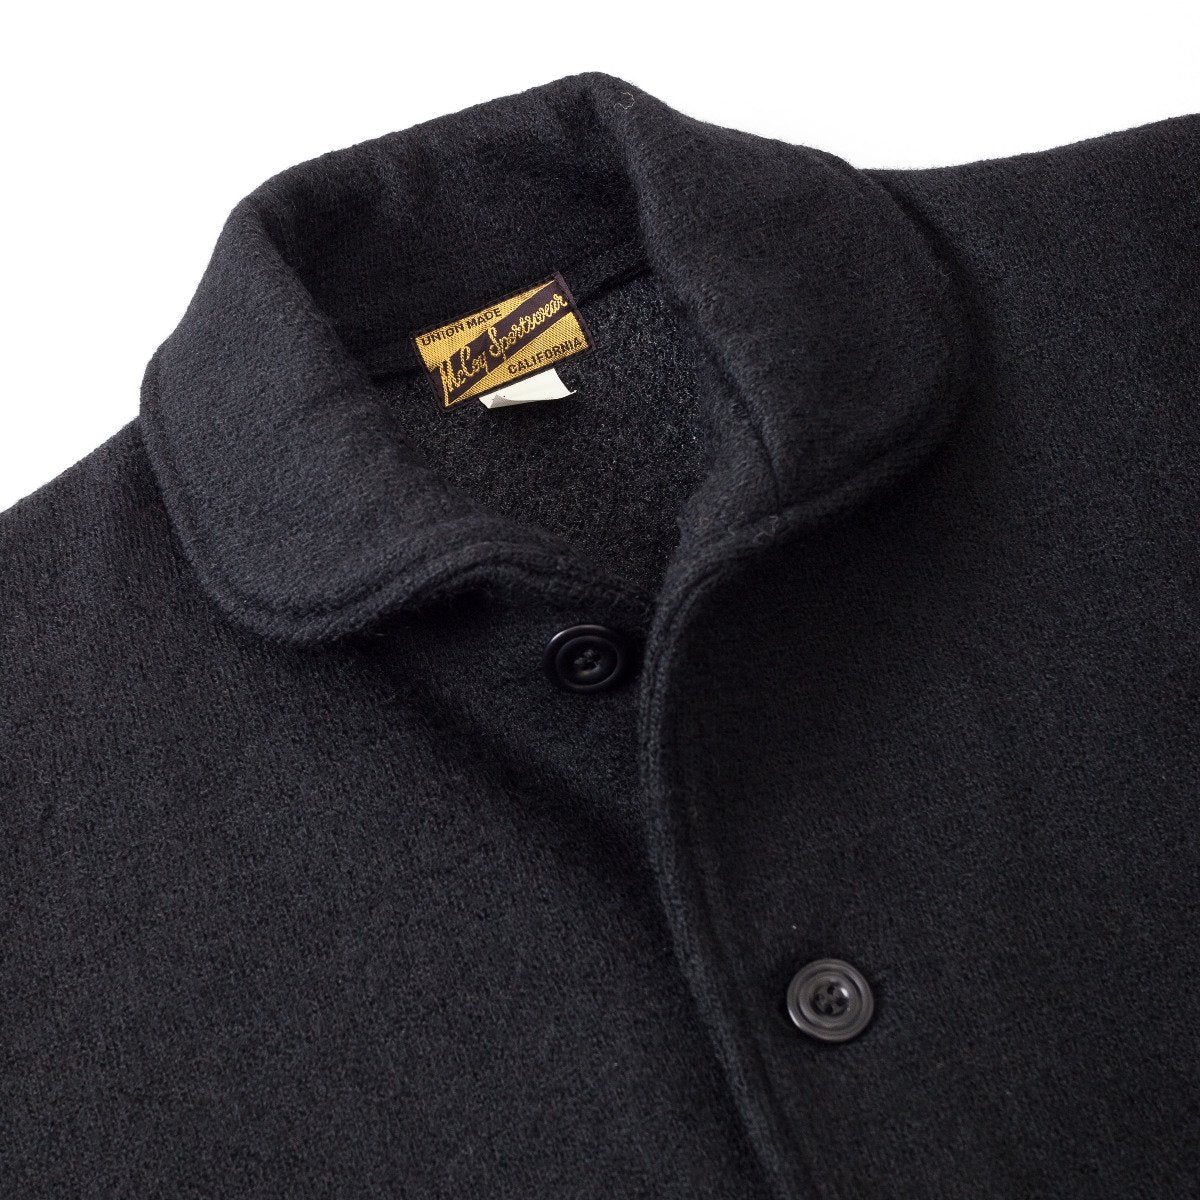 Joe McCoy Wool Shawl Collar Jacket / PLAIN MJ17129-PLAIN